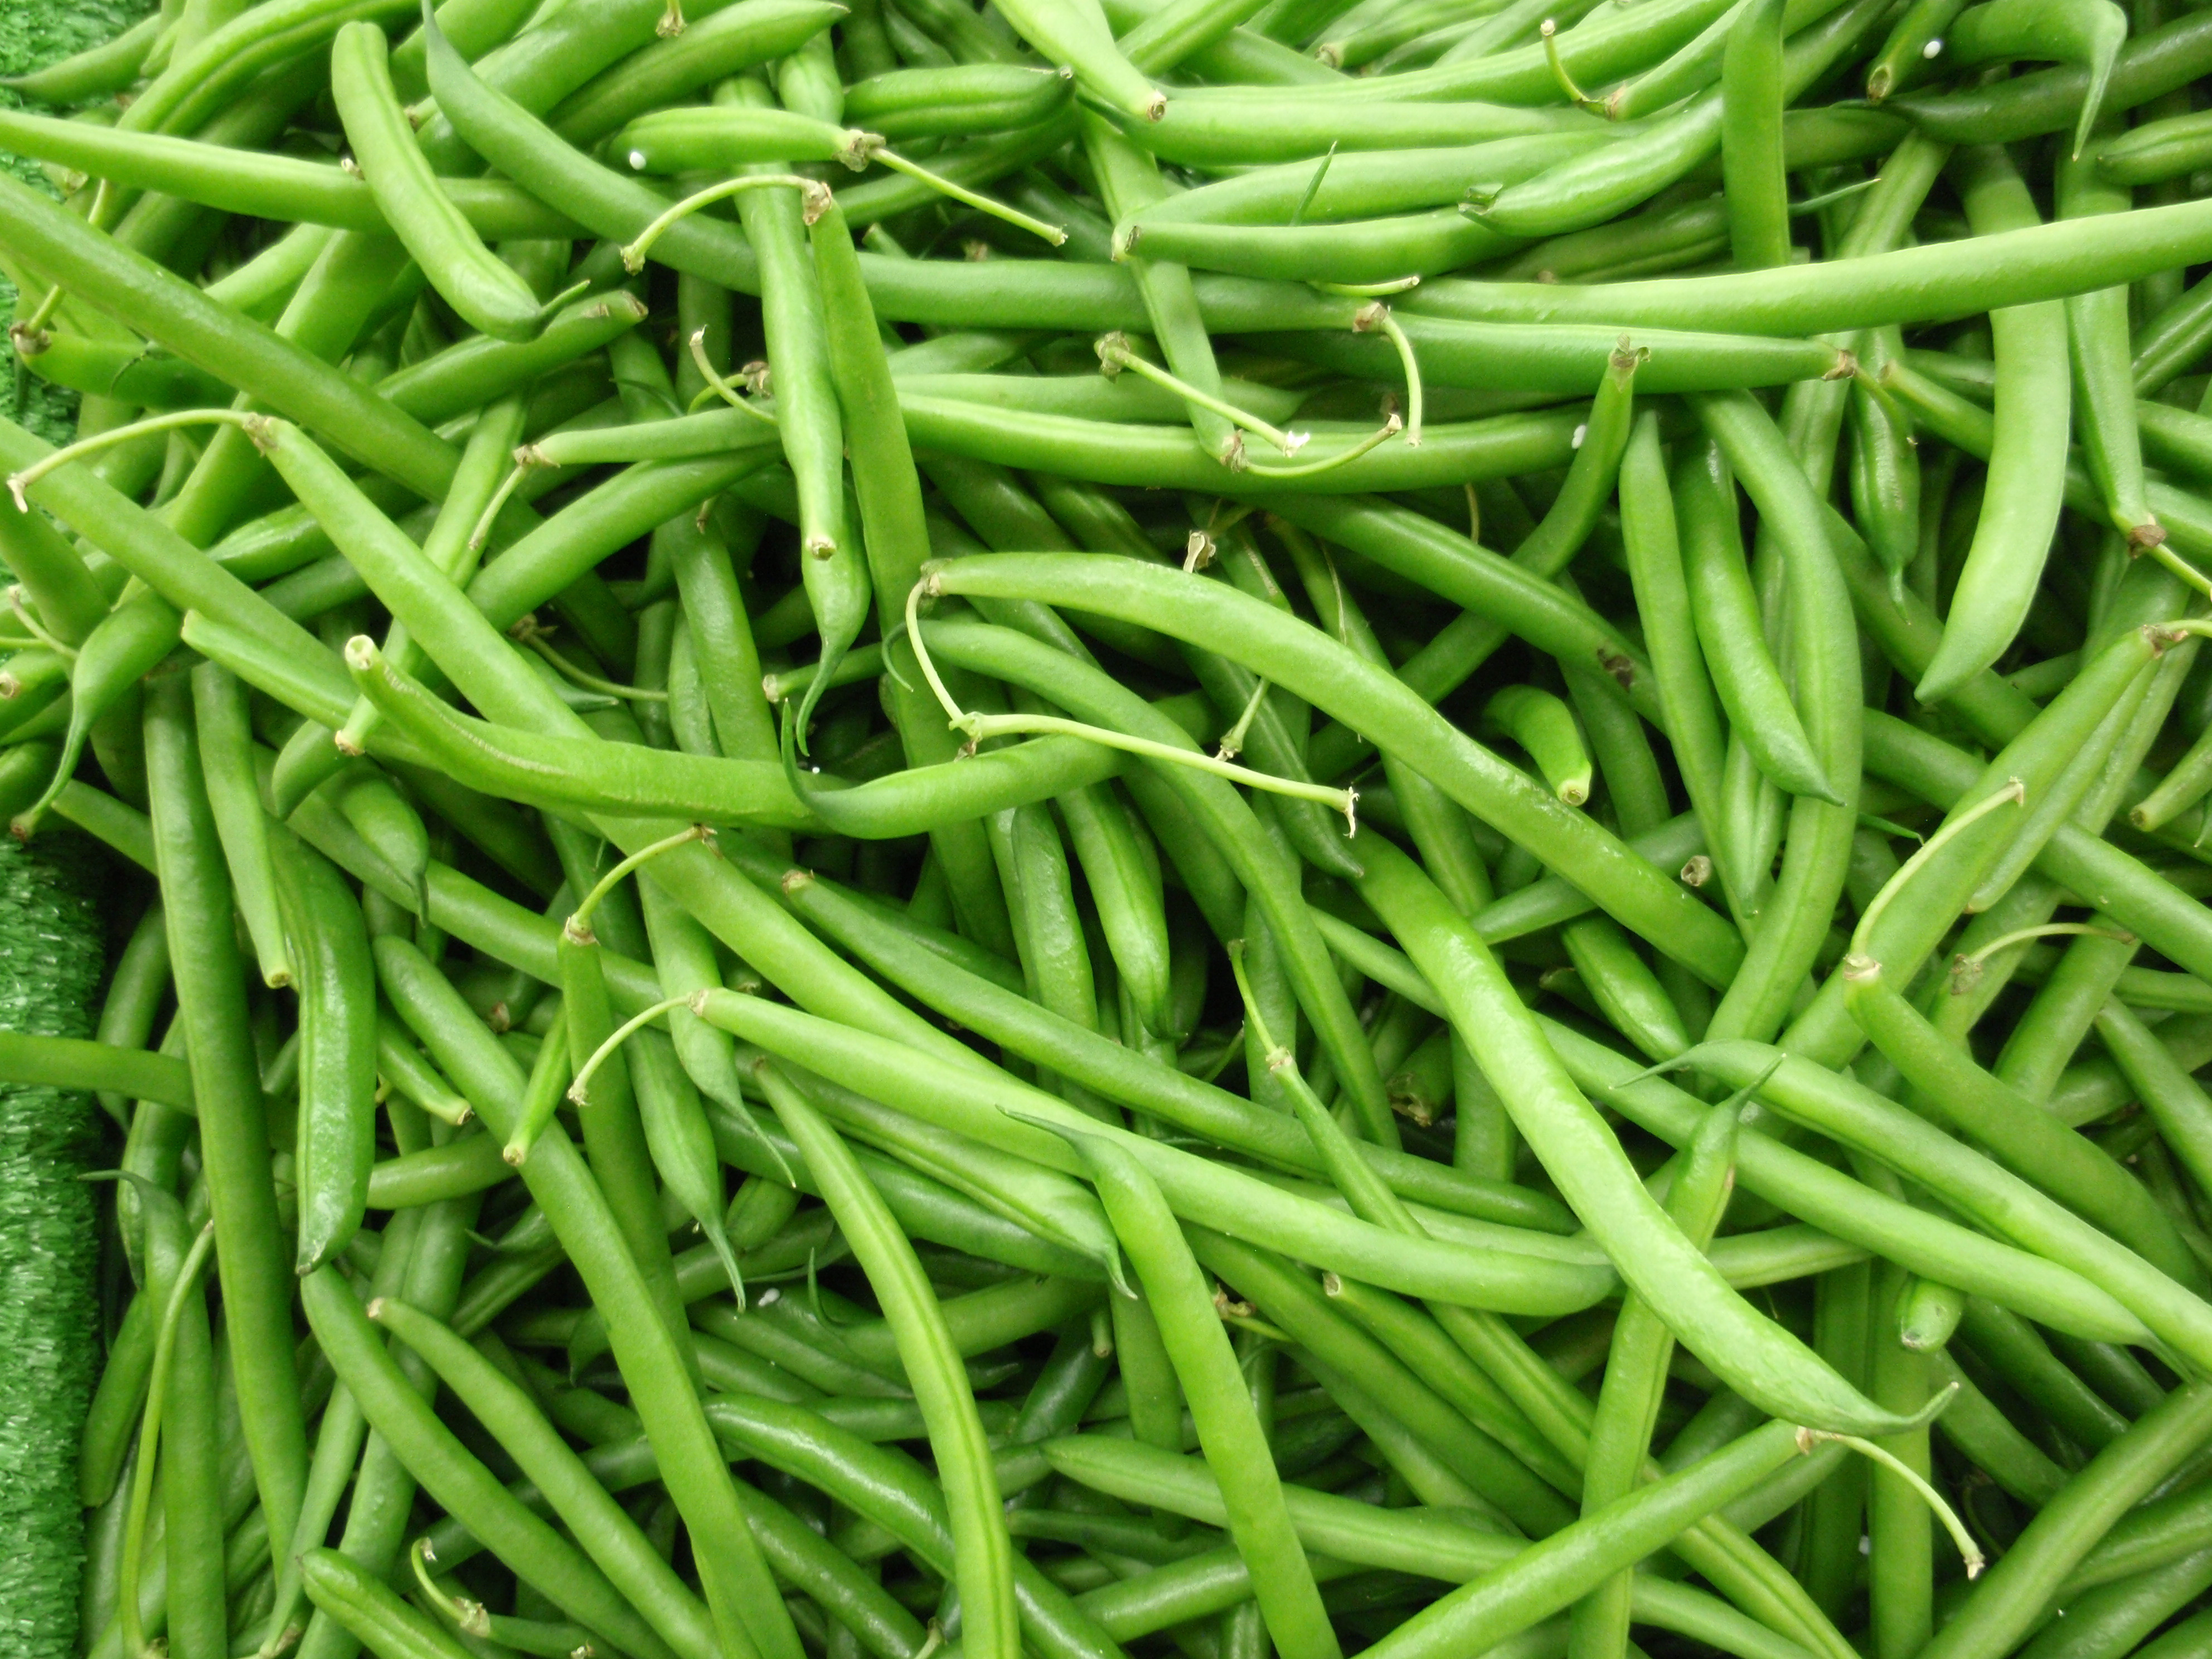 The Green Bean  Health benefits of Asparagus and Green Beans